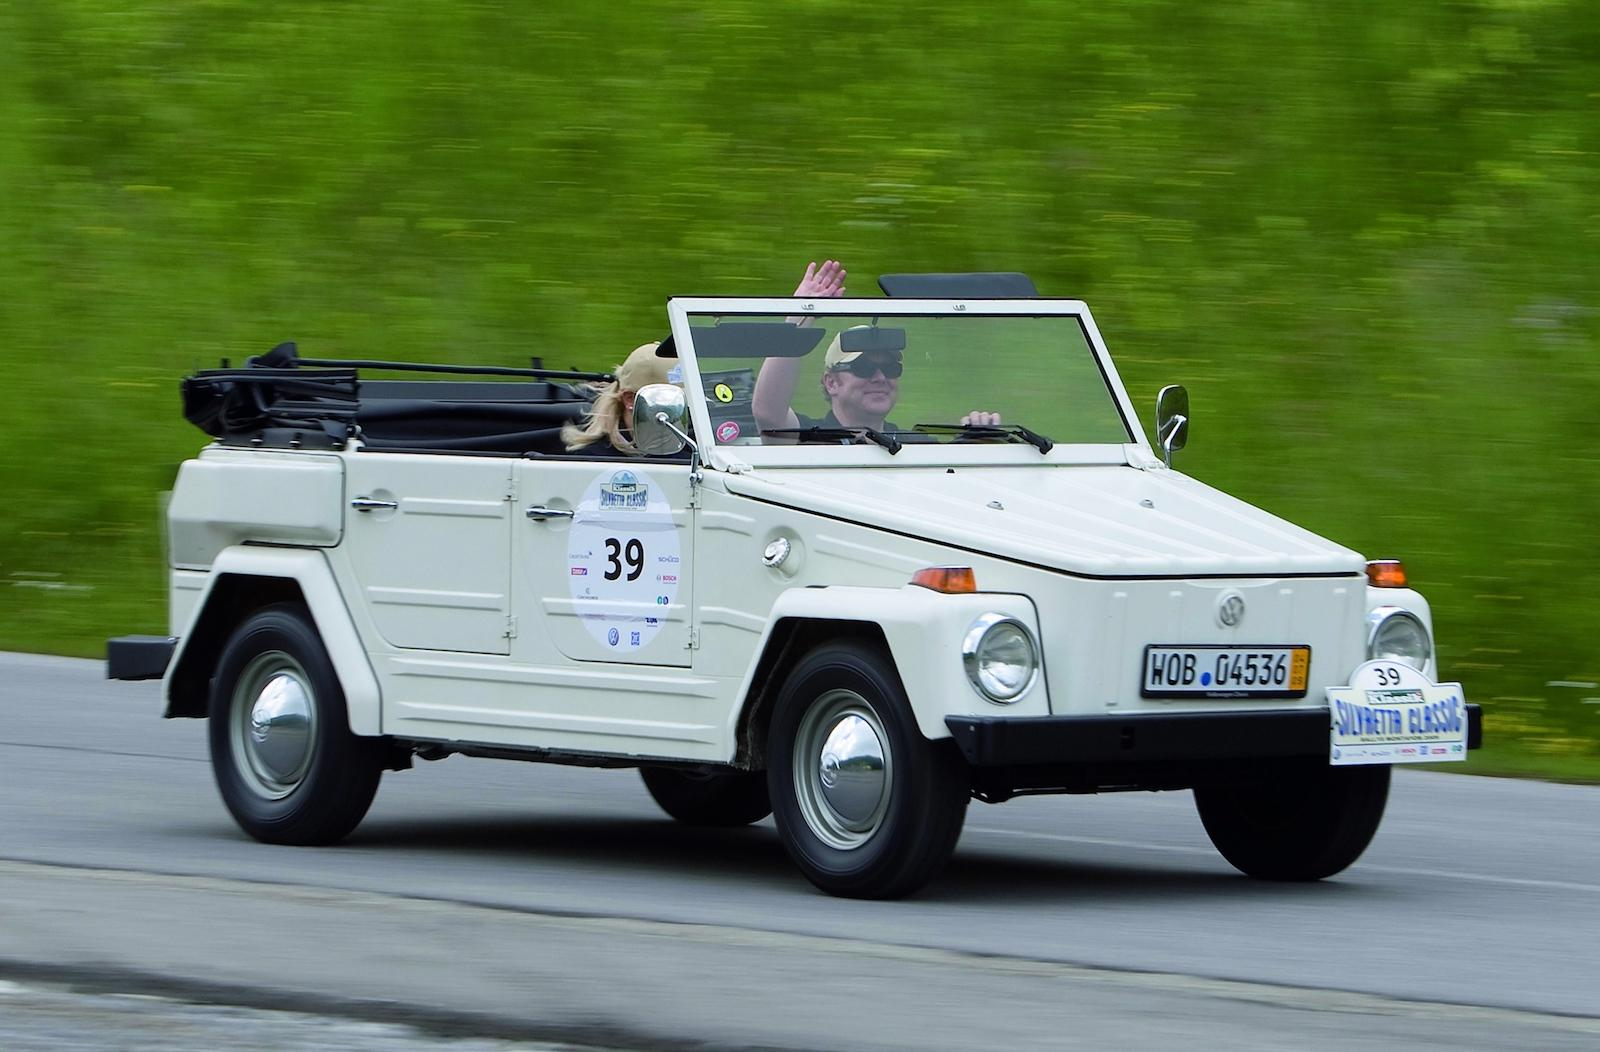 Volkswagen thing 181182 buying guide autoclassics volkswagen thing 181182 buying guide altavistaventures Choice Image